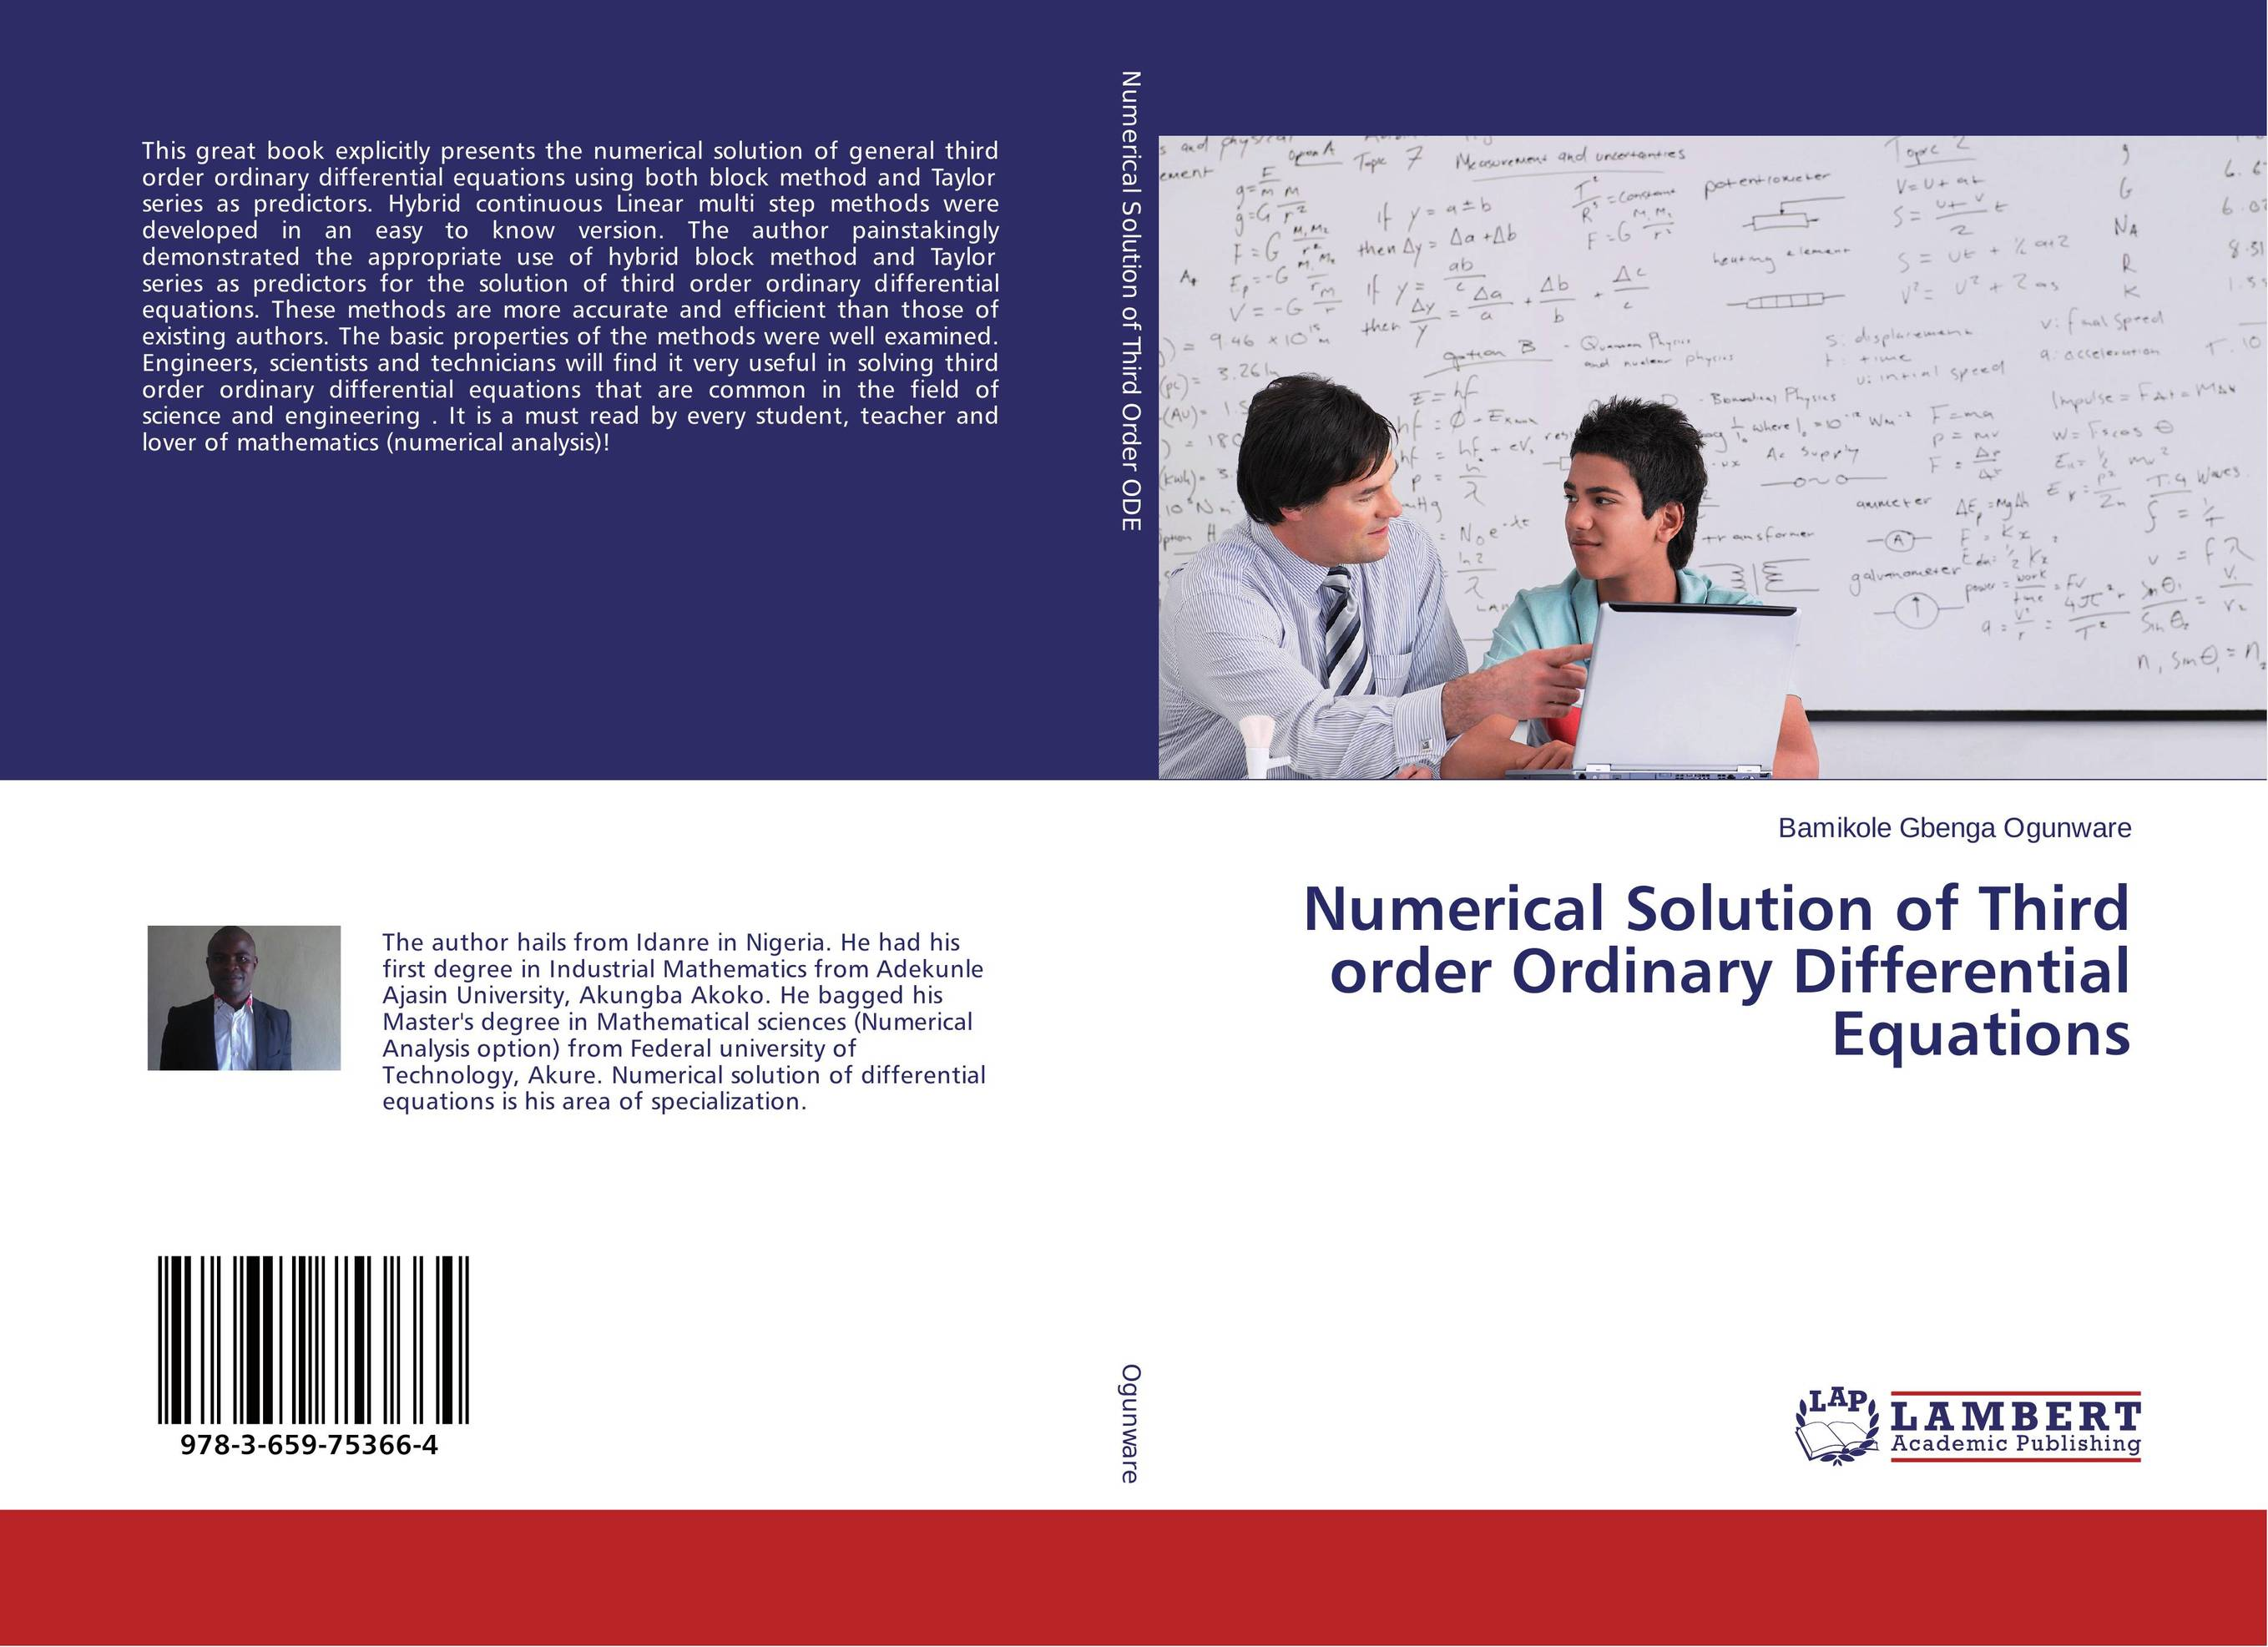 Numerical Solution of Third order Ordinary Differential Equations root and canal morphology of third molar